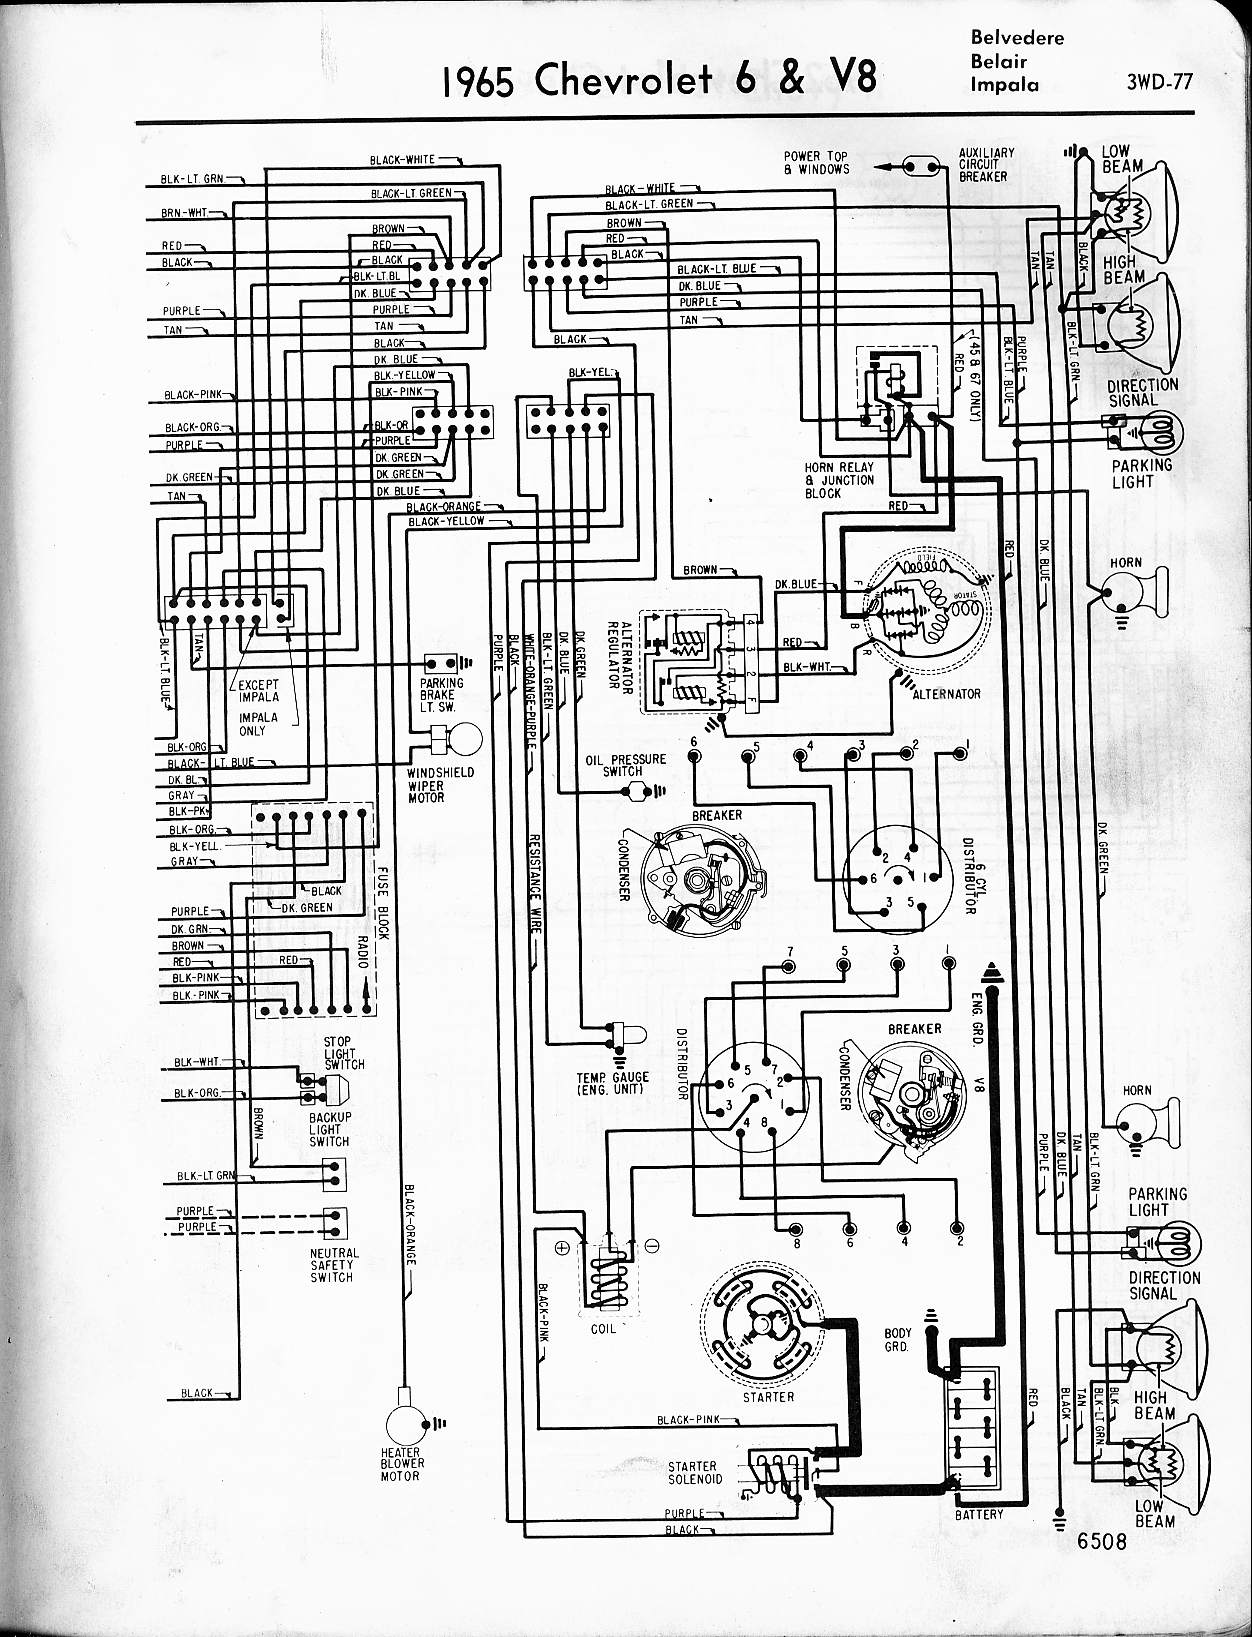 [SCHEMATICS_48EU]  7967 1966 1965 Impala Wiring Diagram | Wiring Resources | 1966 Impala With Hei Distributor Wiring Diagram |  | Wiring Resources